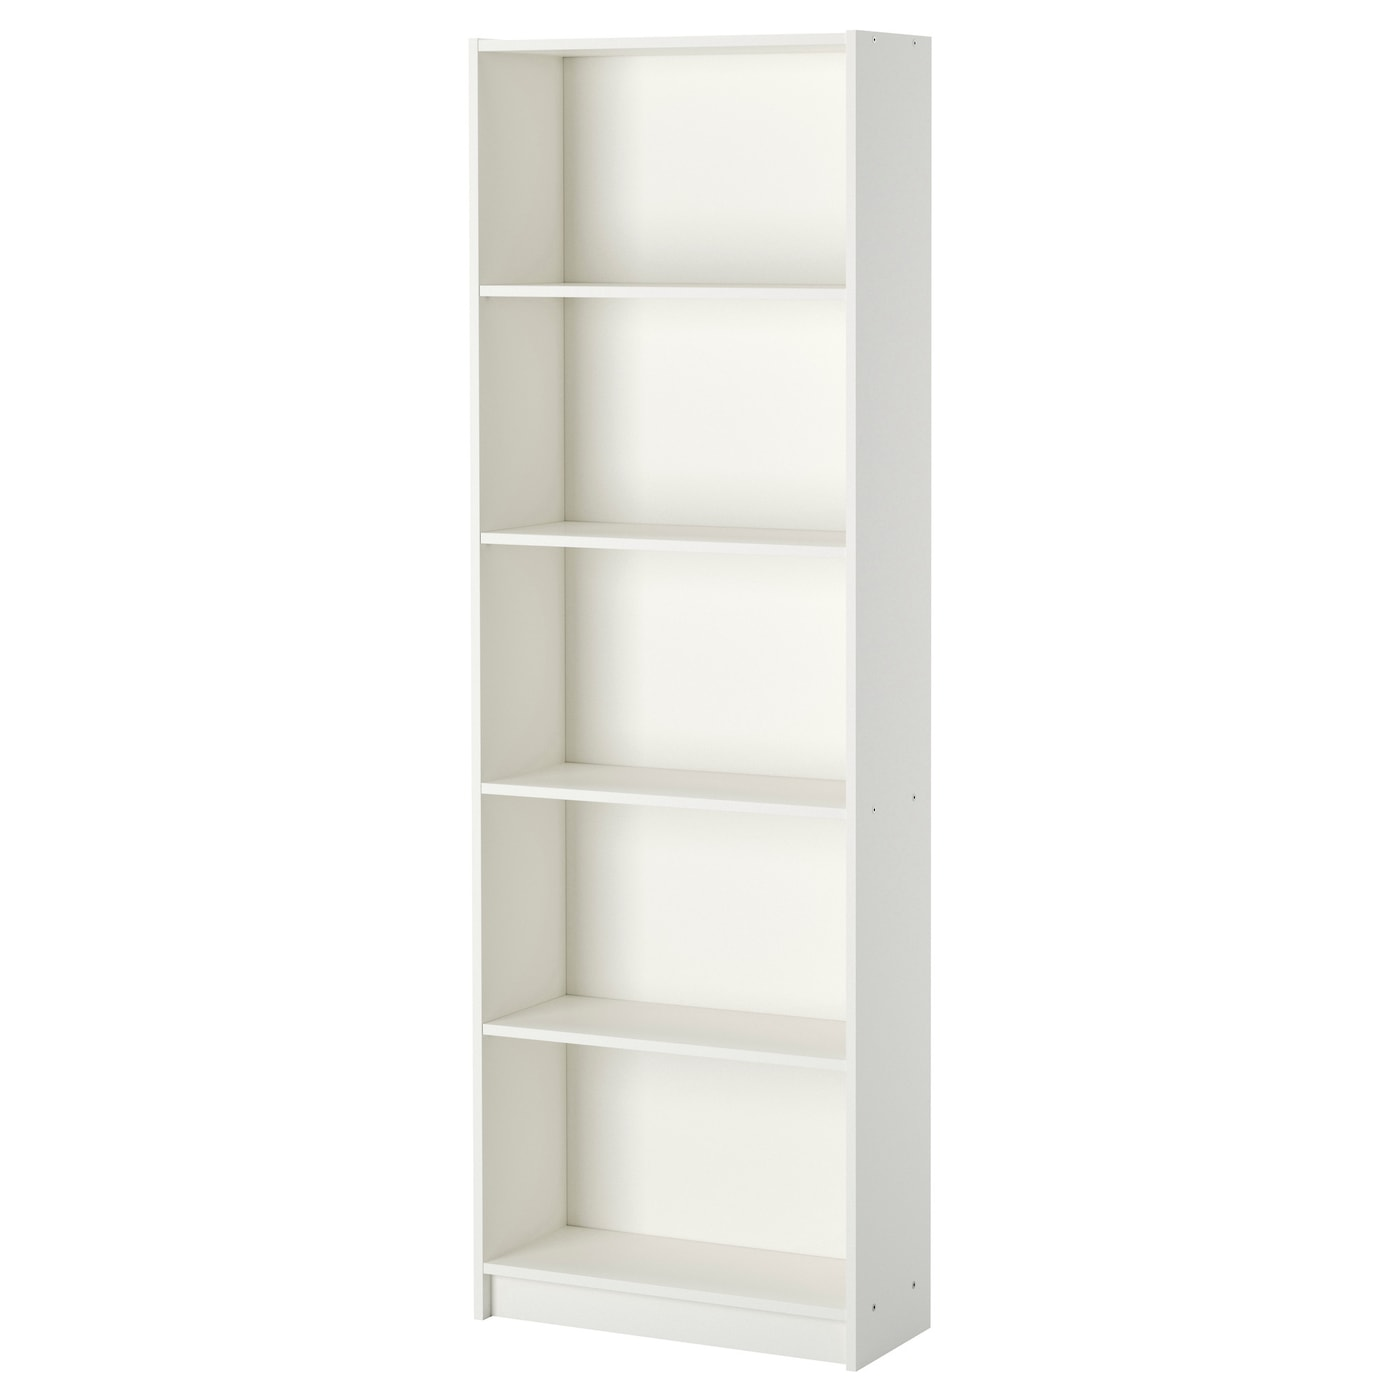 gersby bookcase white 60x180 cm ikea. Black Bedroom Furniture Sets. Home Design Ideas